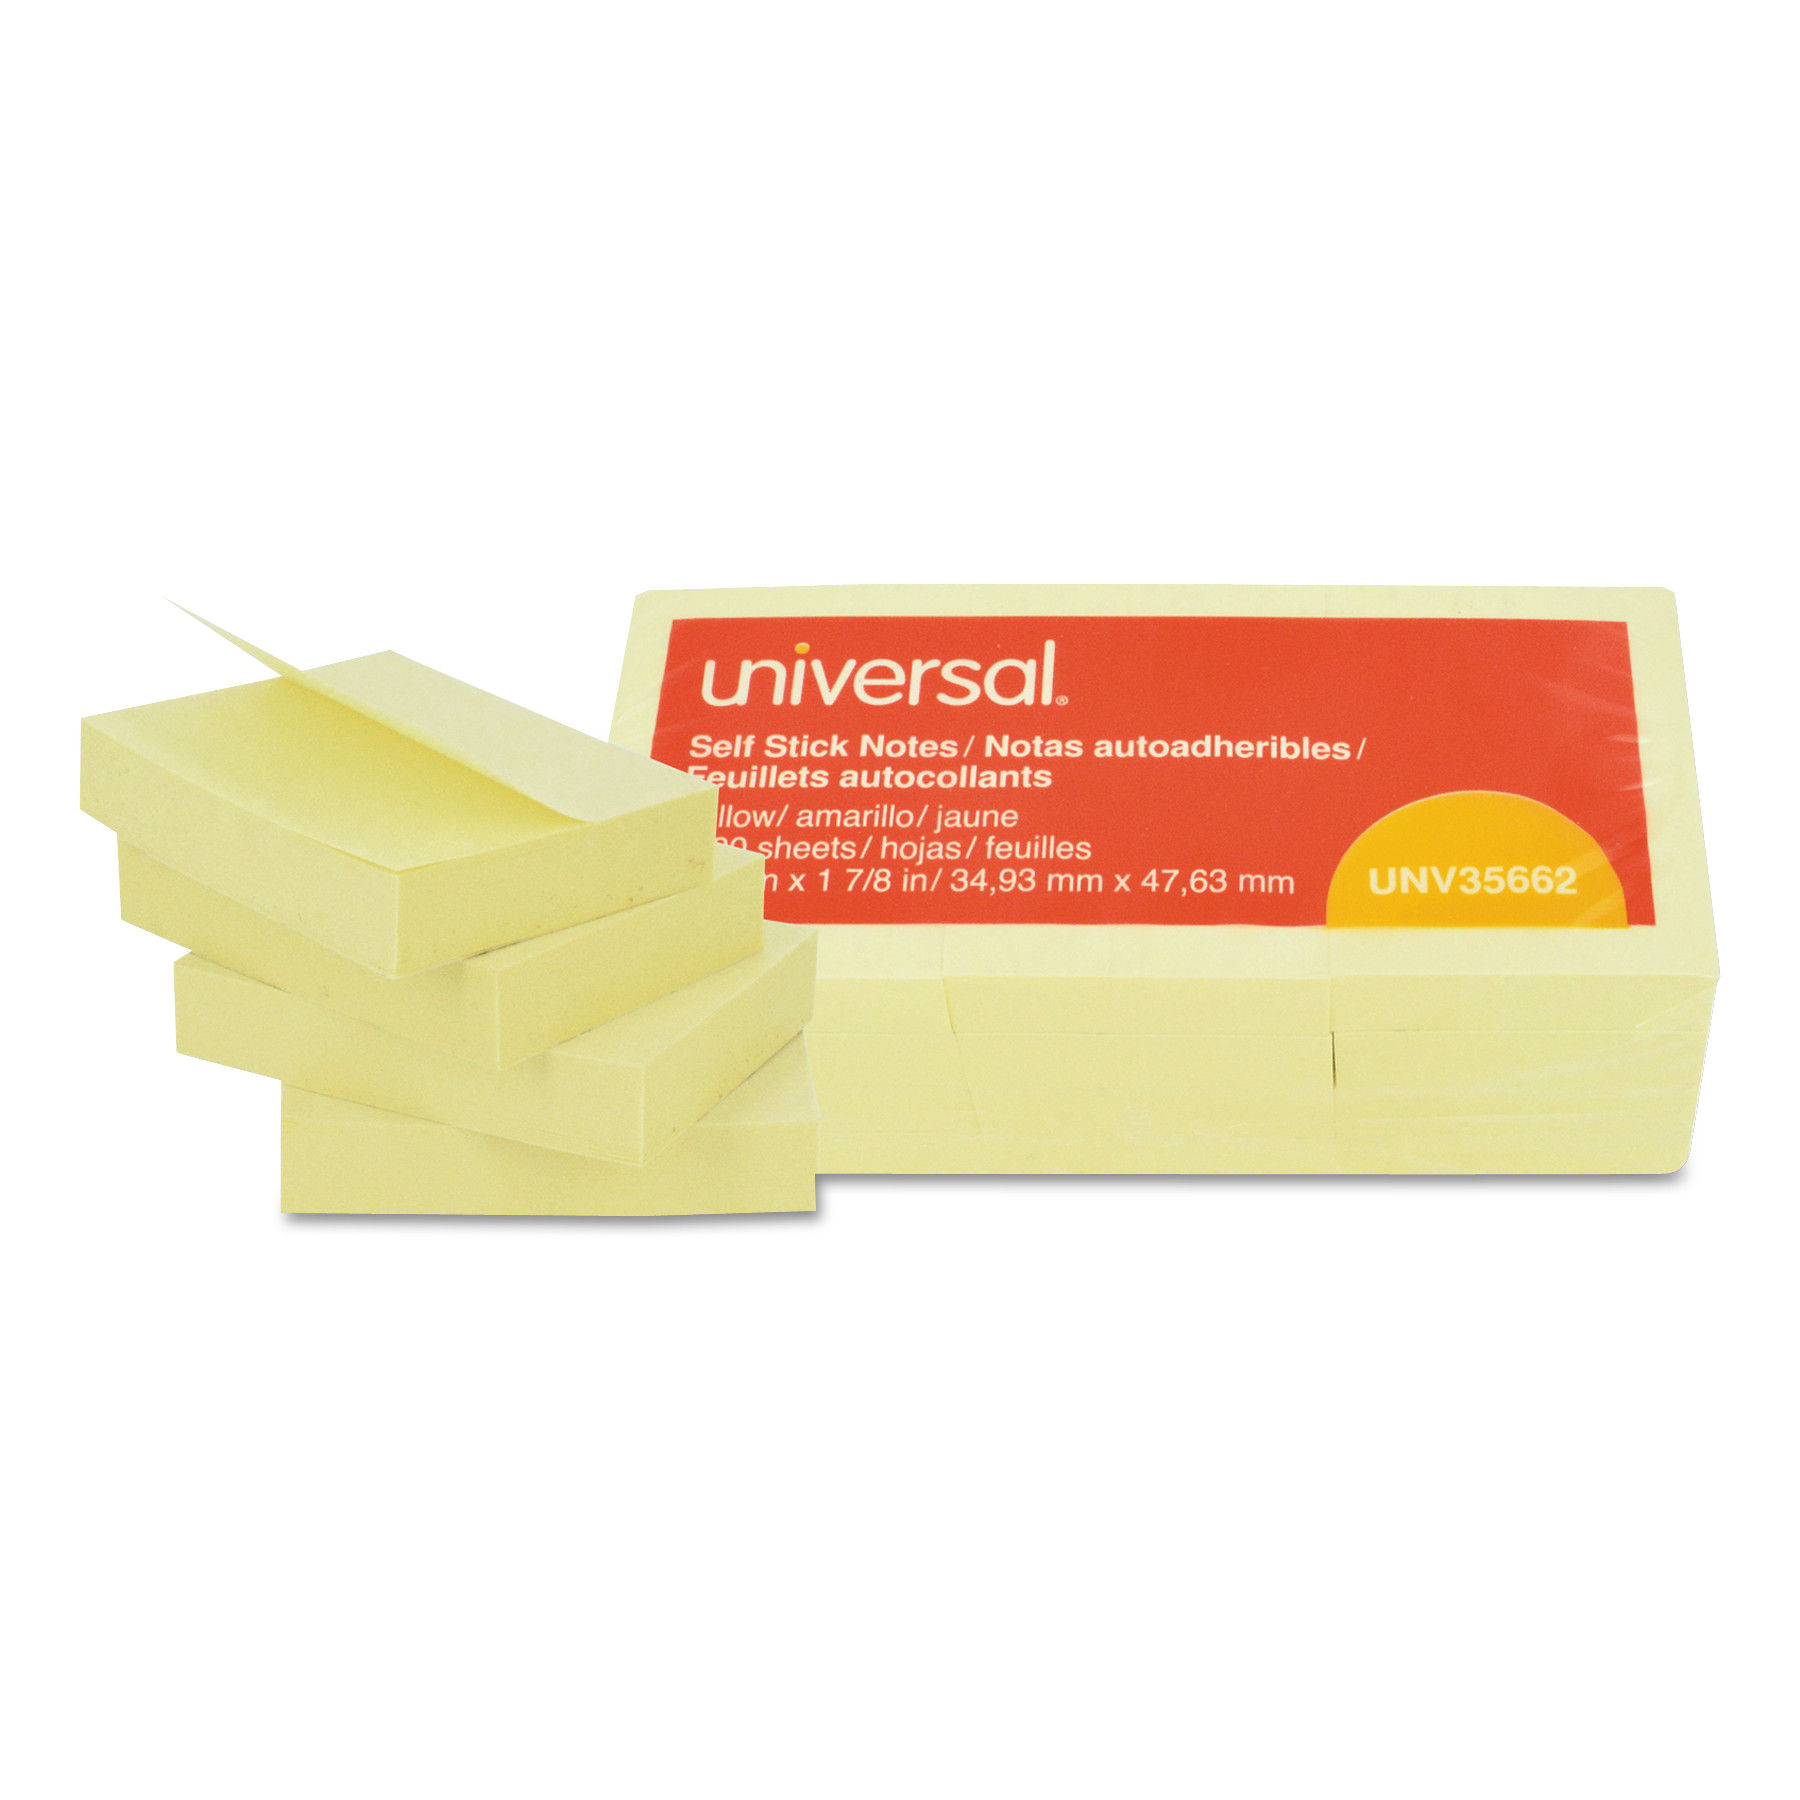 No Tax Lined 4 x 6, Canary Yellow Post-it Notes 12 Pack